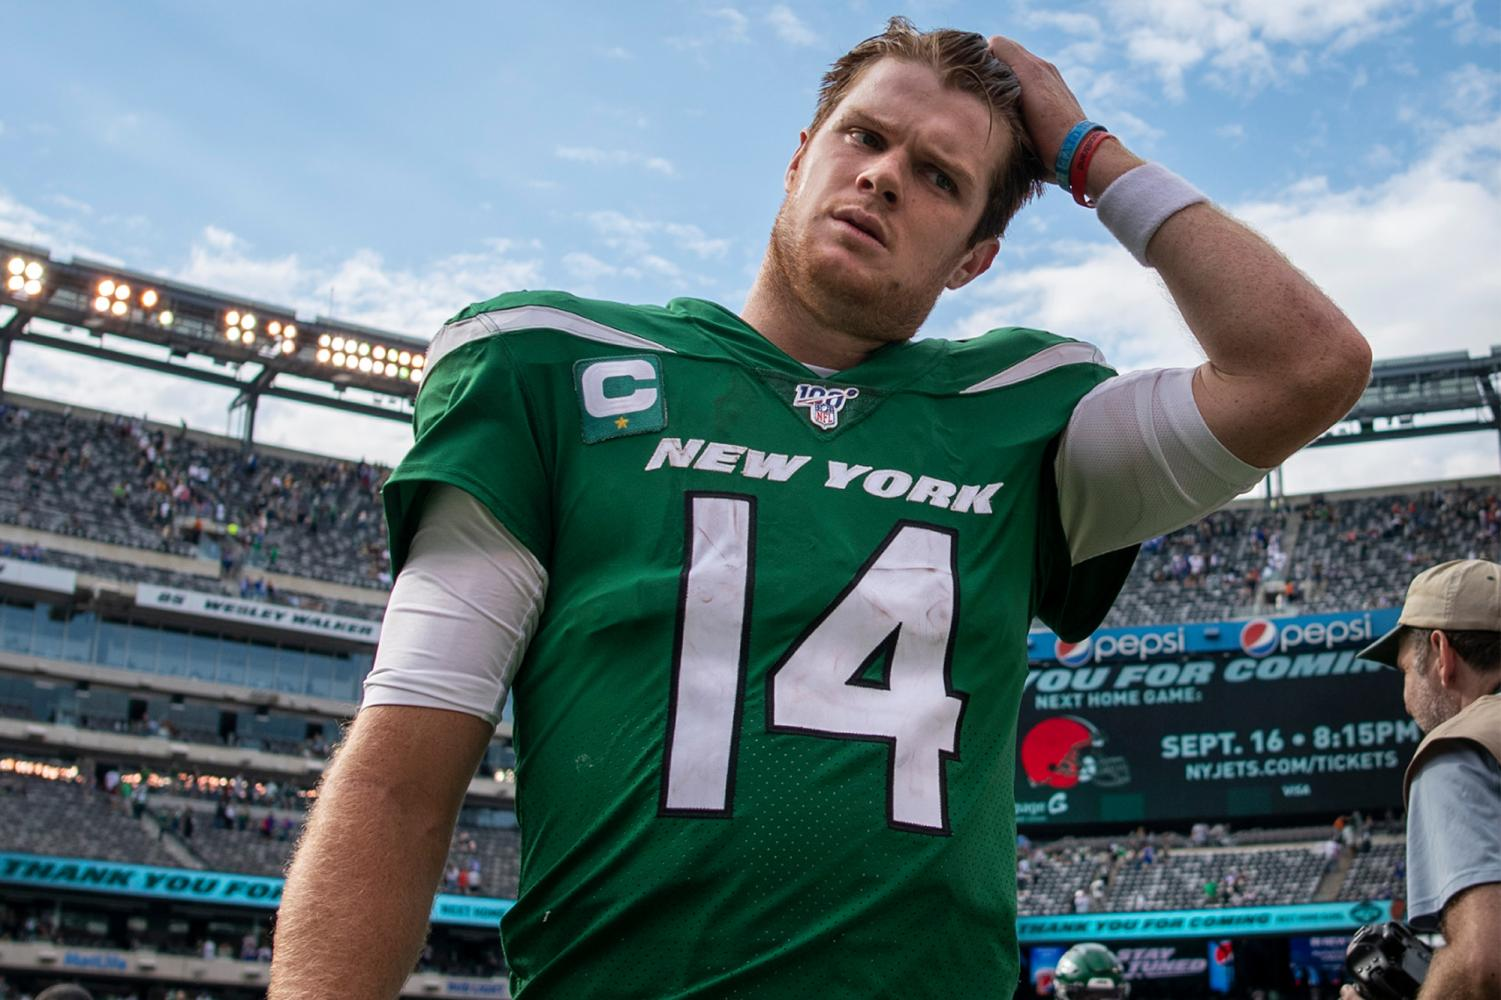 09/08/19 New York Jets quarterback Sam Darnold (14) walks off the field after a NFL game against the Buffalo Bills in East Rutherford, NJ.  (Corey Sipkin/Freelance).